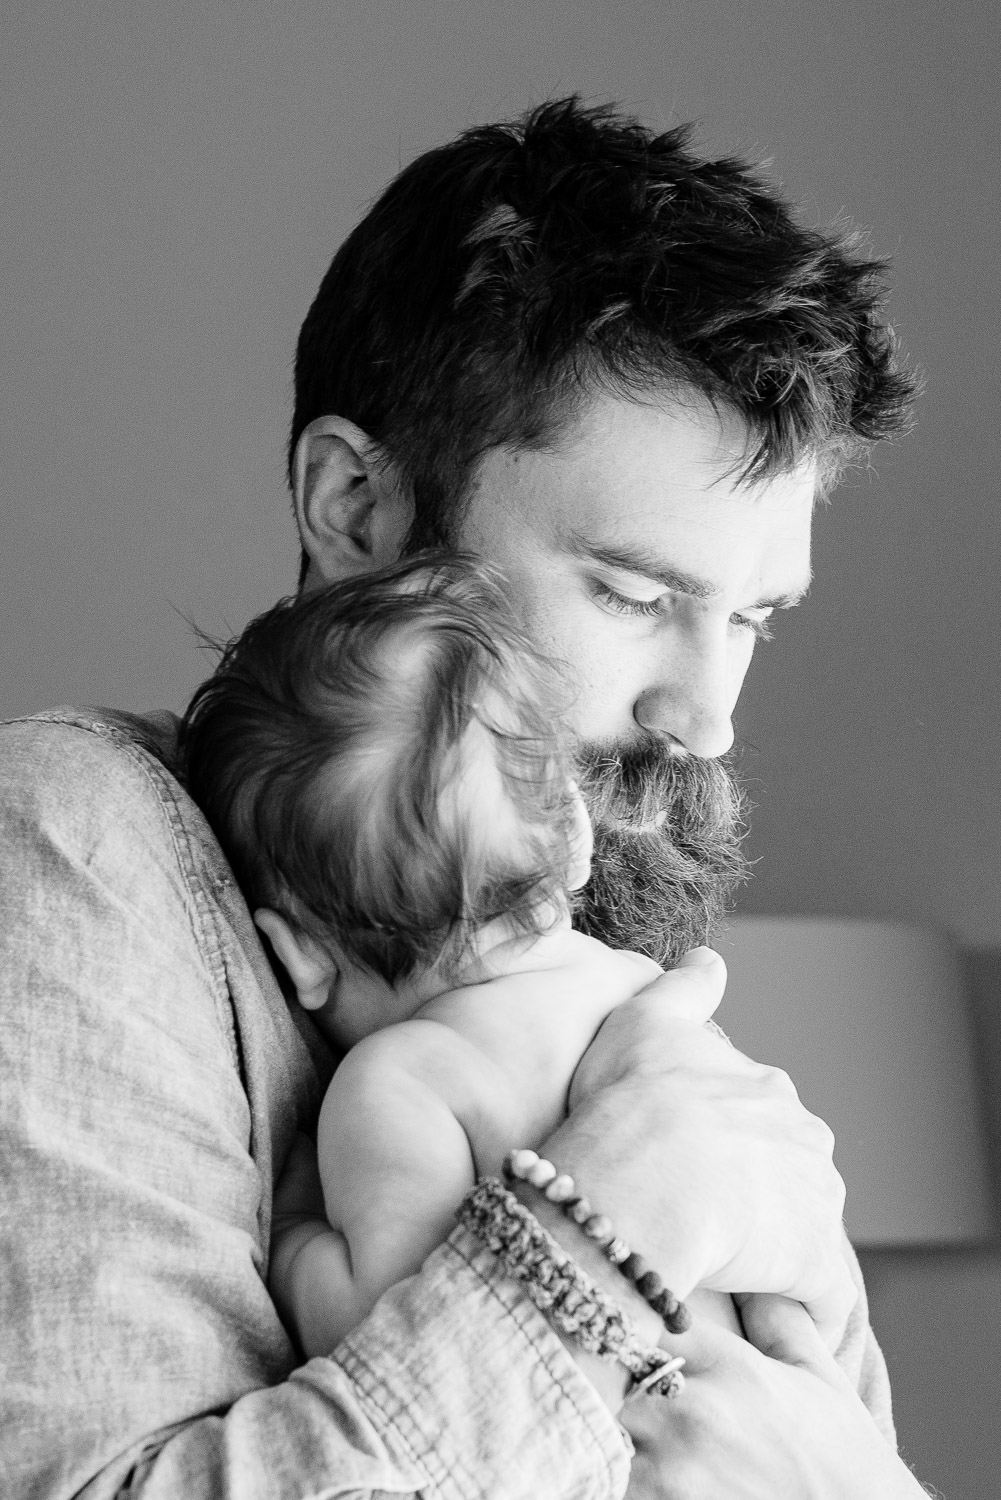 Daddy holds his baby girl in black and white